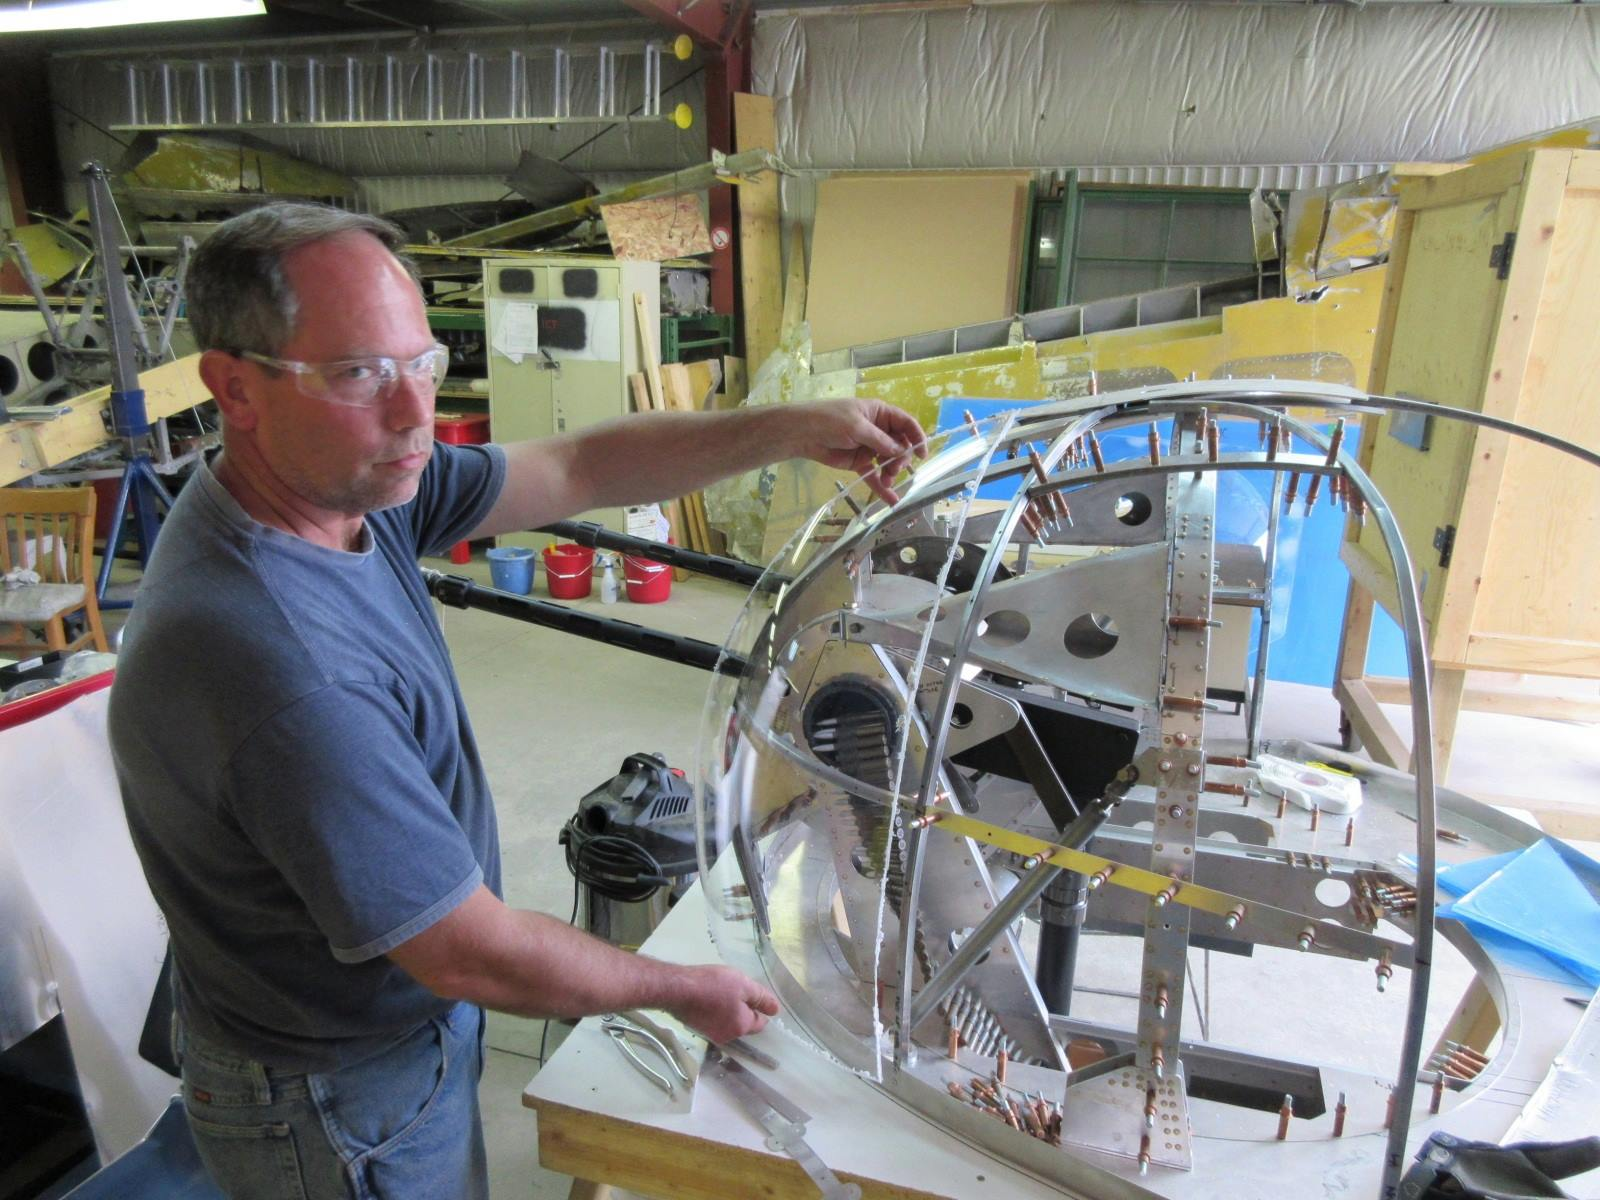 Dave Saulnier test-fitting a freshly formed Plexiglas panel to the replica nose turret. (photo by Malcolm Uhlman)